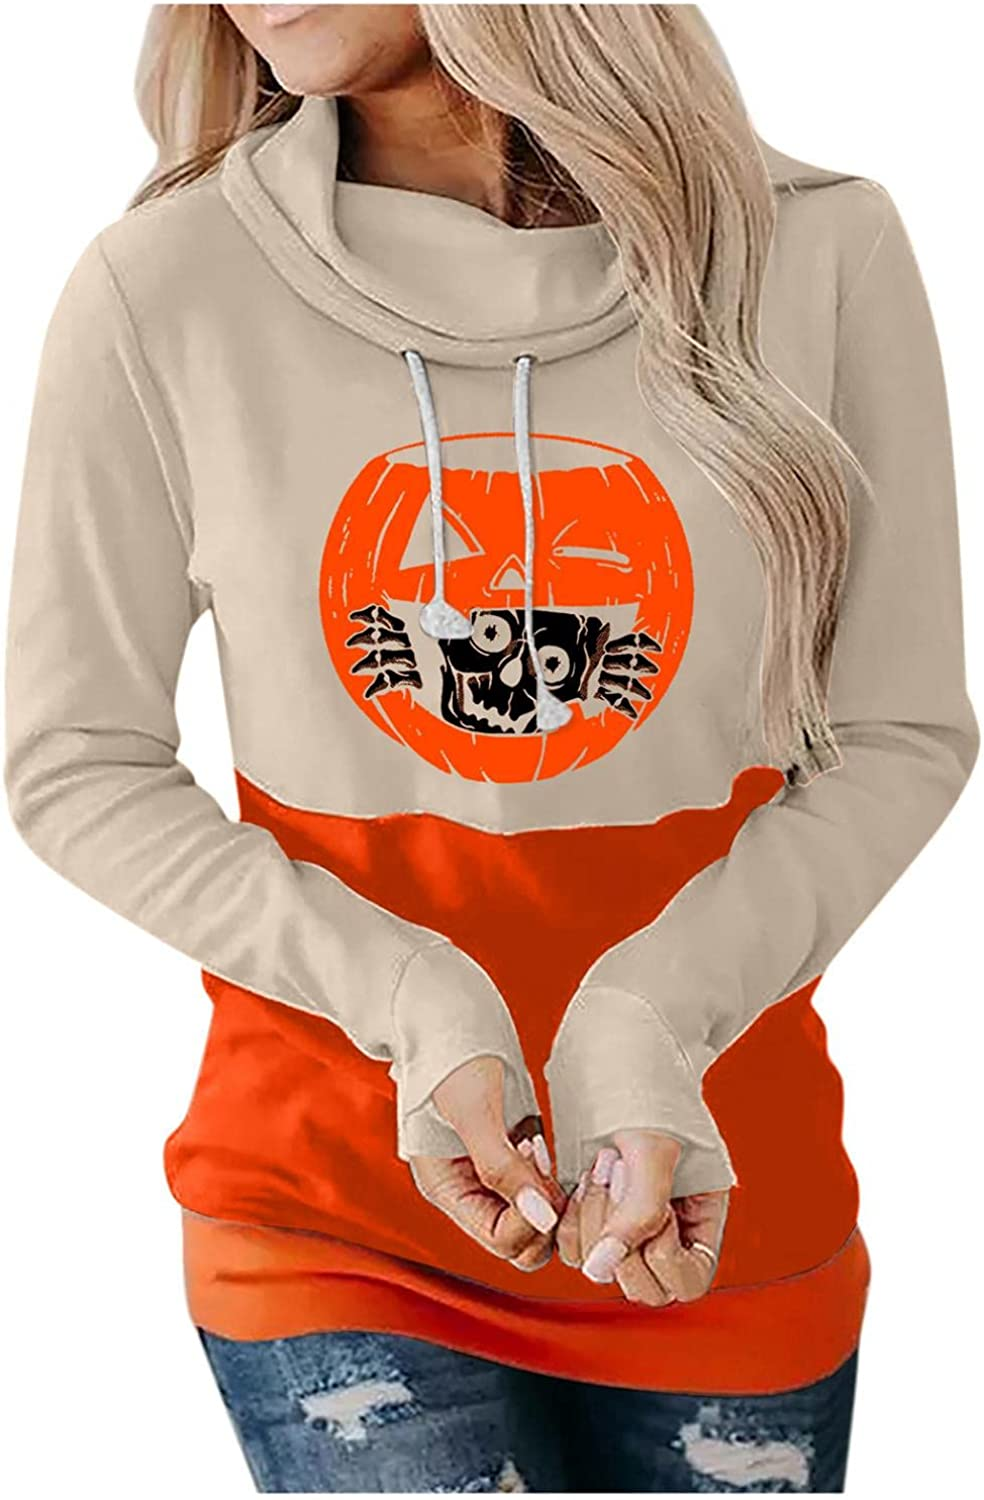 Women's Cowl Neck Halloween Horror Graphic Printed Hoodies Sweatshirts Casual Long Sleeve Pullover Hooded Sweater Tops